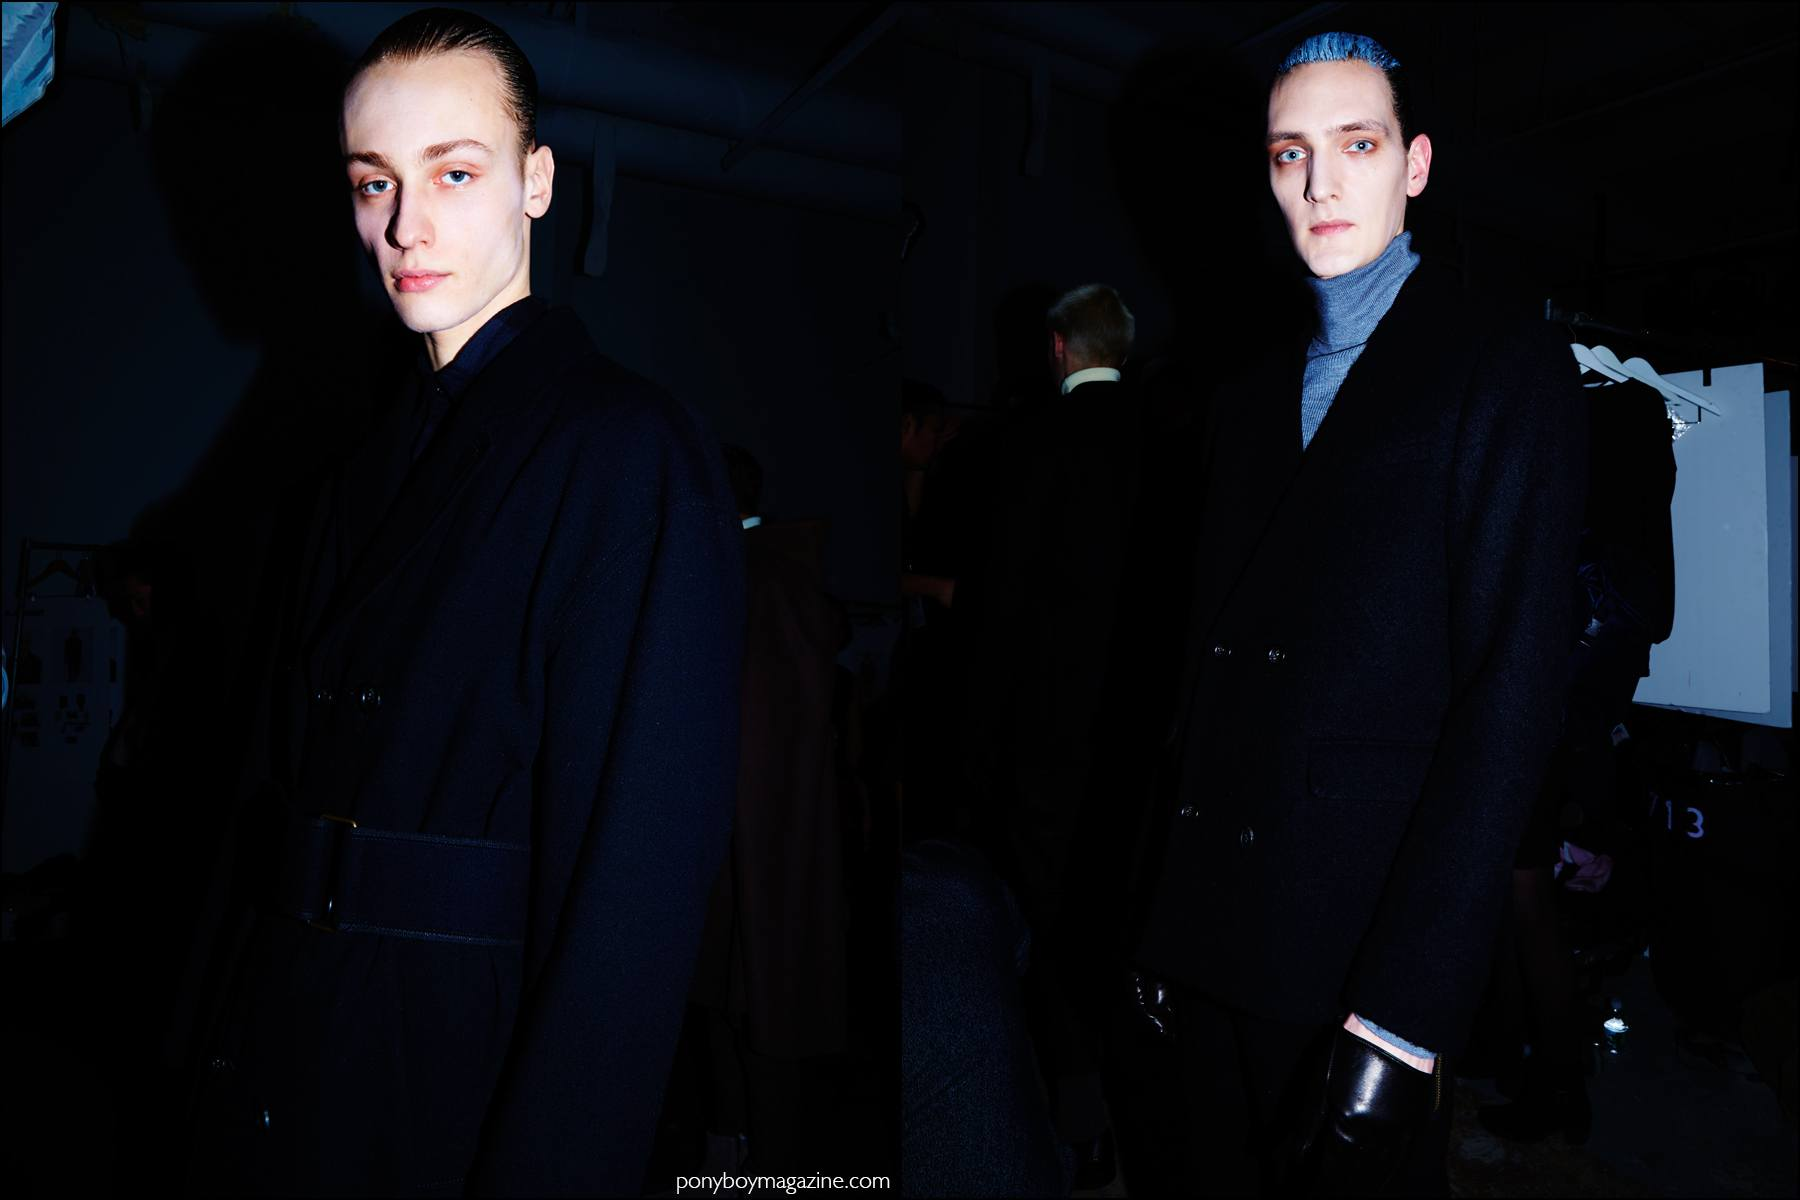 Male model Yannick Abrath photographed exiting the runway, backstage at Robert Geller F/W16 menswear show. Photography by Alexander Thompson for Ponyboy magazine NY.